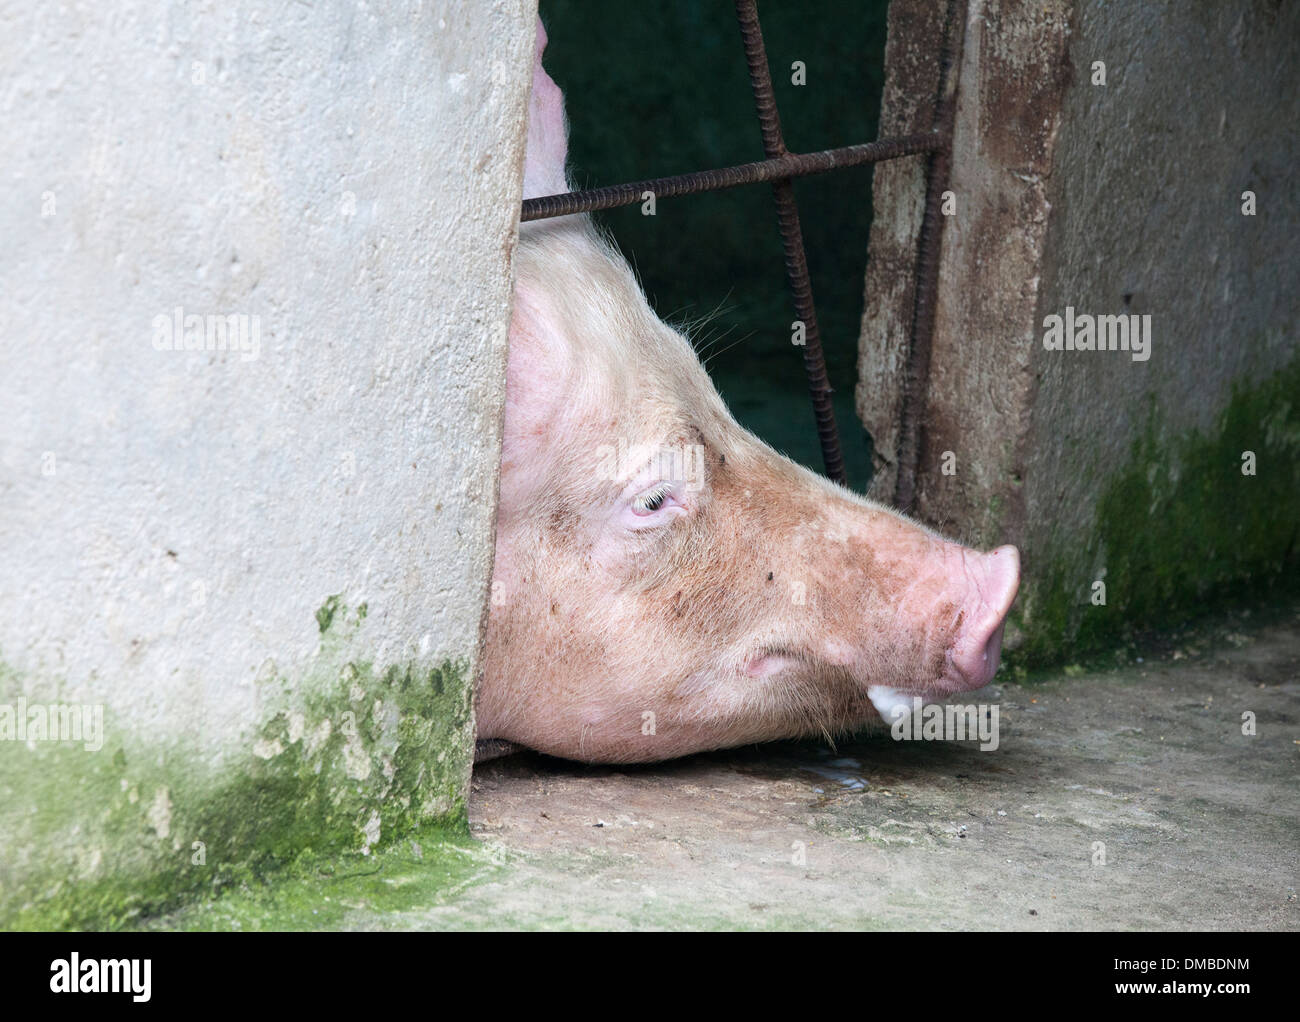 Domestic pig (Sus scrofa domestica) pushing head through cage  bars - Stock Image